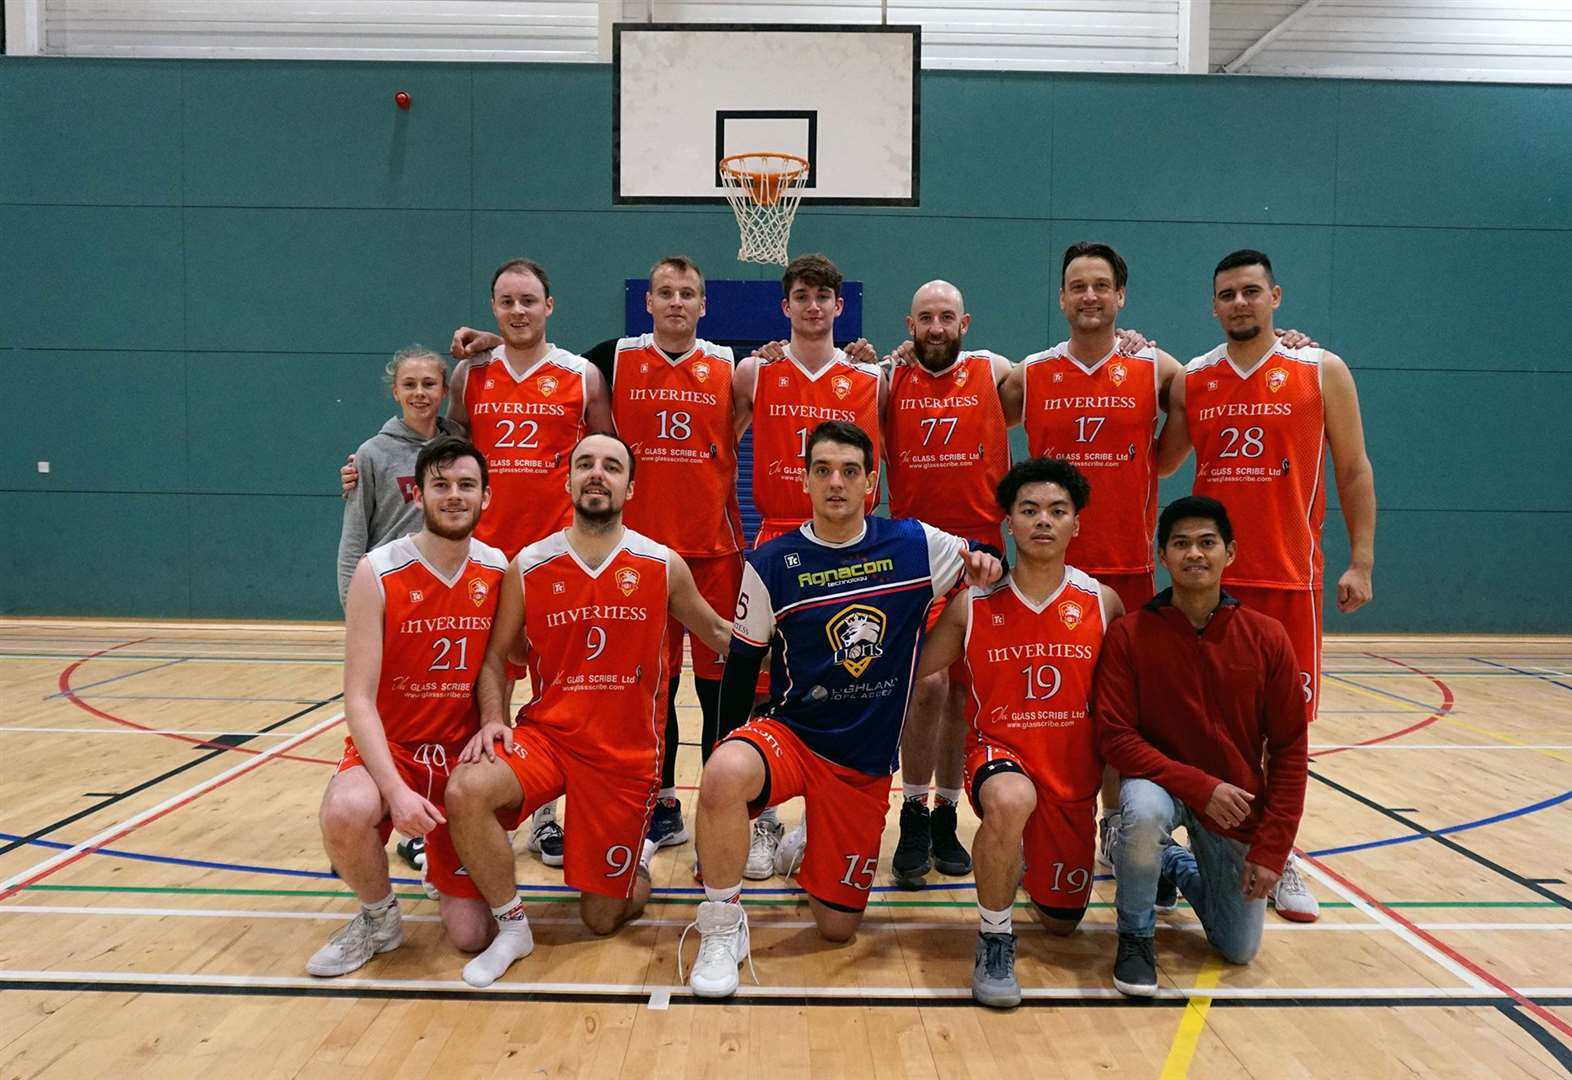 Inverness City Lions roaring with pride at excellent start